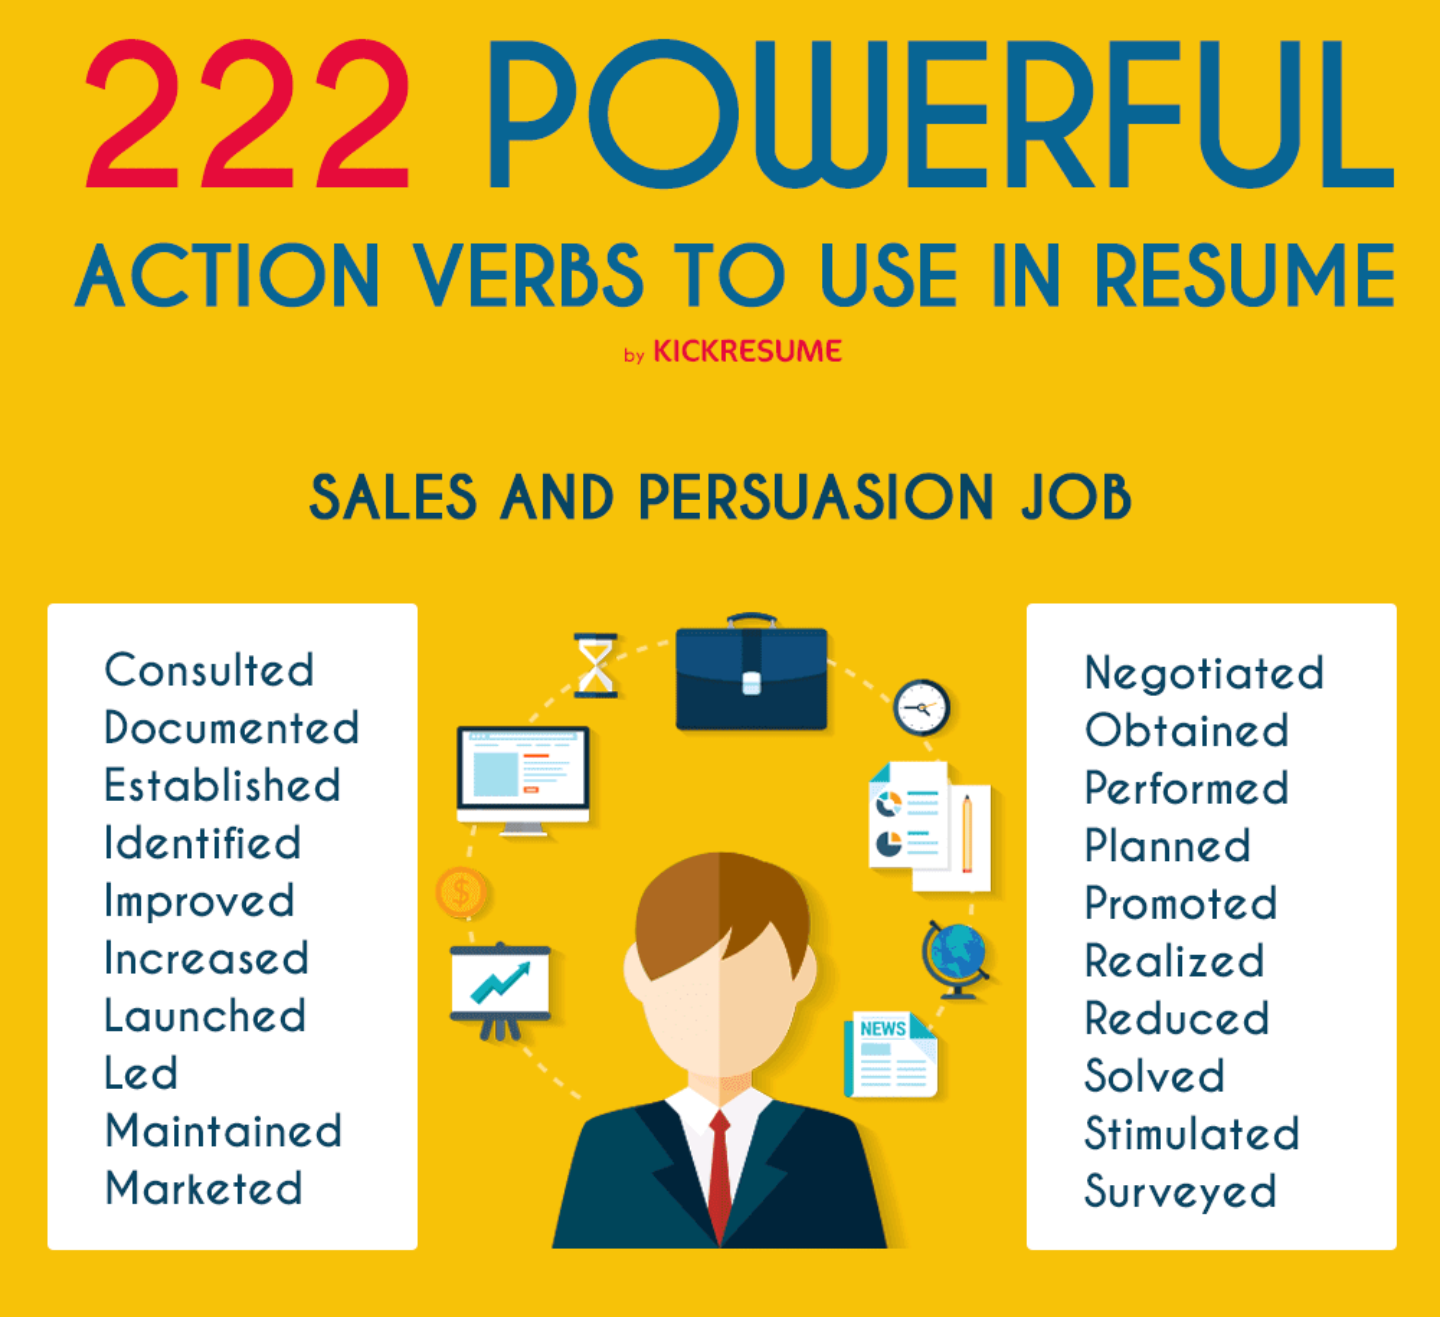 powerful action verbs to use in resume آکادمی آموزش نوین زبان powerful action verbs to use in resume